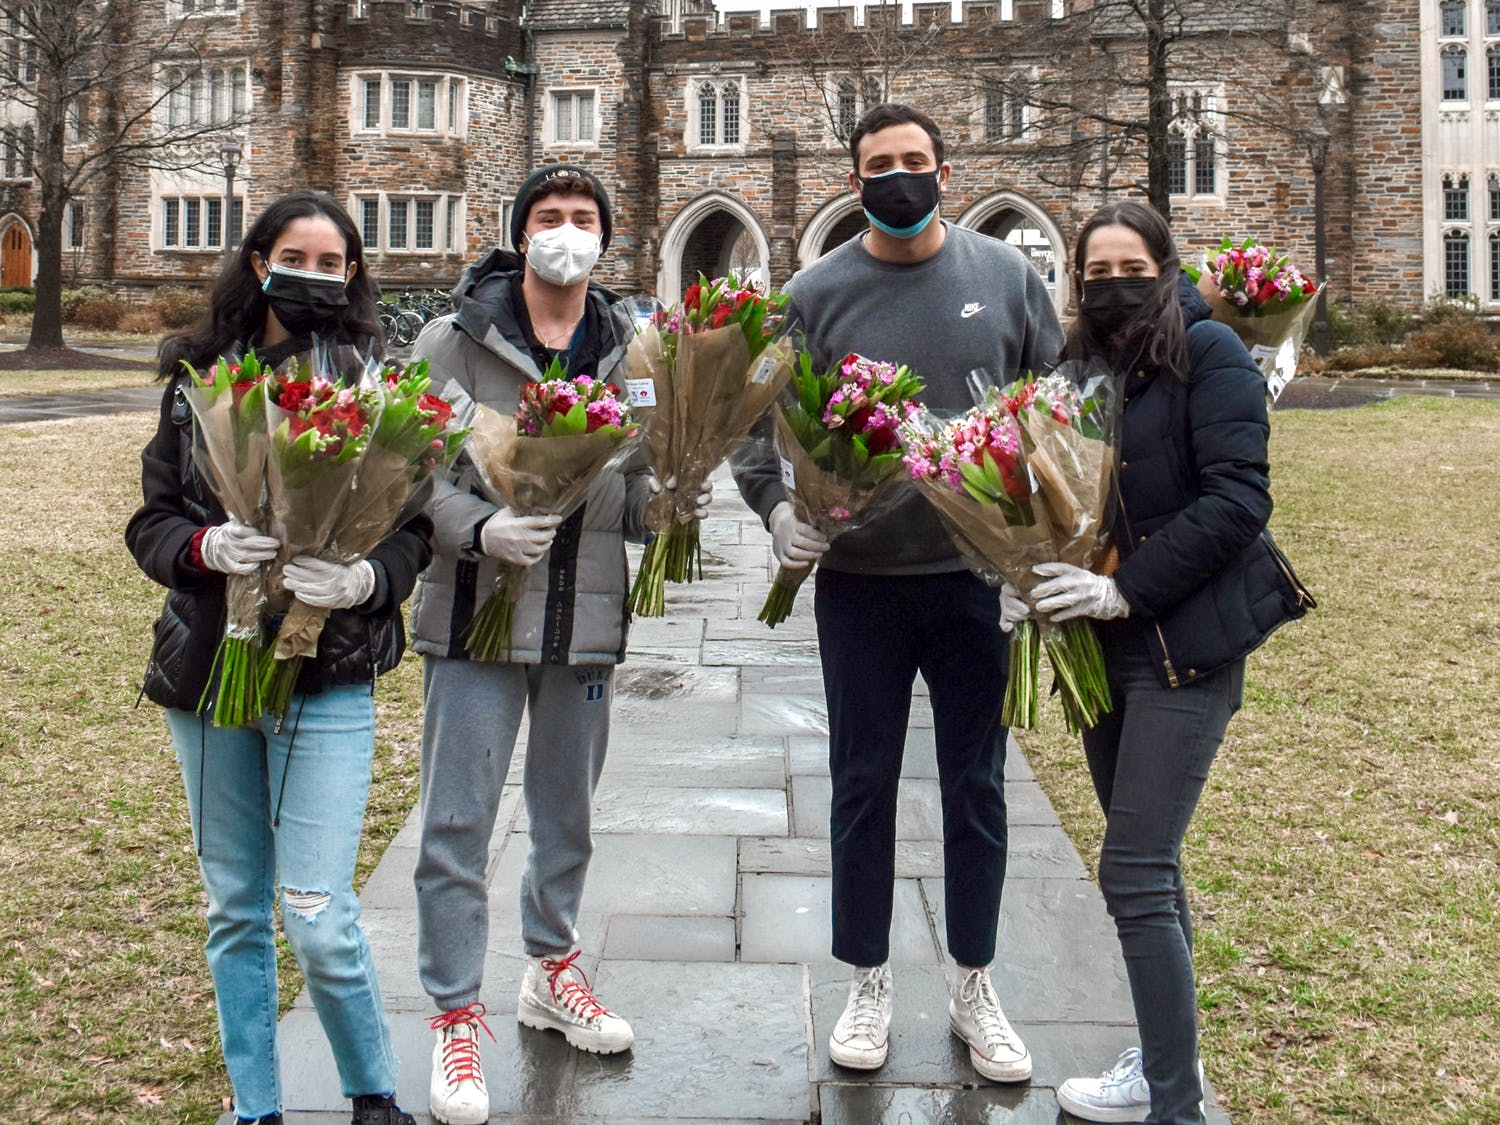 On February 19th, Duke LASO (Latin American Student Organization) had their annual Valentine's Day giveaway event, despite the winter storm that same morning. The flowers were delivered all the way from Colombia, donated by Flores El Trigal and Queen's Flowers. The event was coordinated by Natalia Mesa, a Duke and LASO alum from the Class of 2020. LASO distributed the bouquets through West Union, East and West bus stops, Pitchforks, security locations, Perkins Library, The Loop, and the East Campus Marketplace. Amidst all the recent changes and the ongoing pandemic, LASO was able to show Duke and Healthcare workers how much their dedication, care, and courage was appreciated.